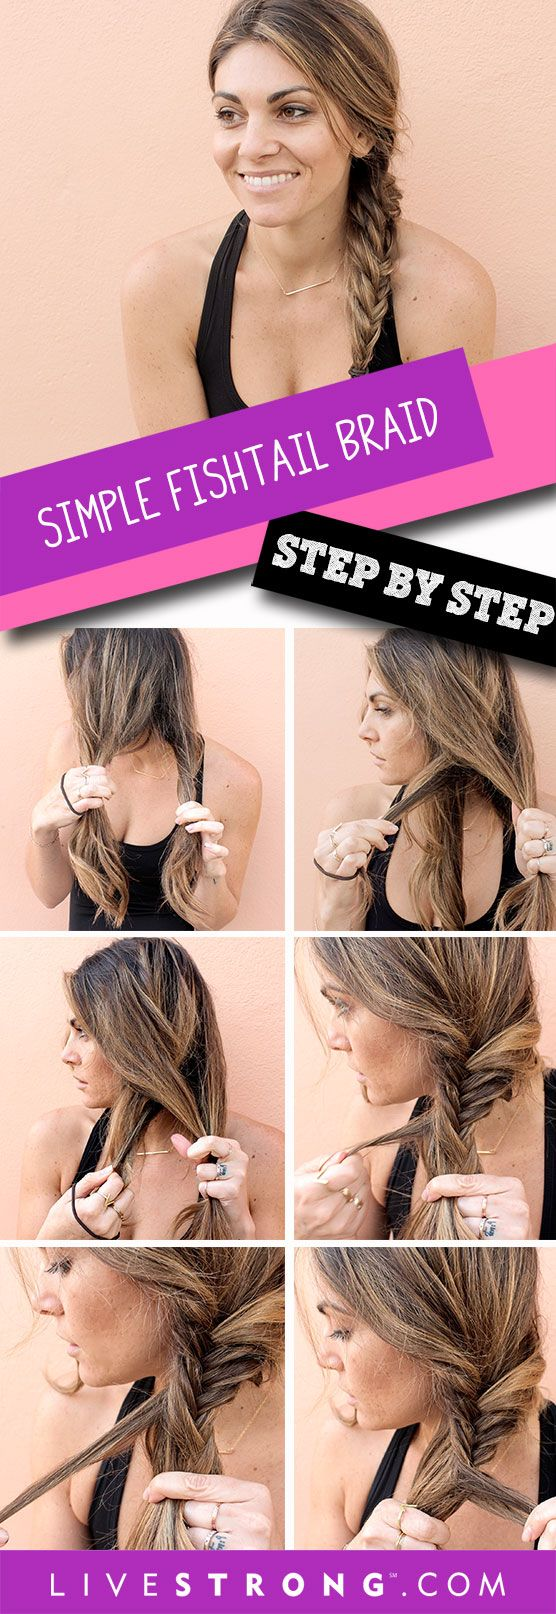 How to rock easy stylish braids at the gym hair accessories